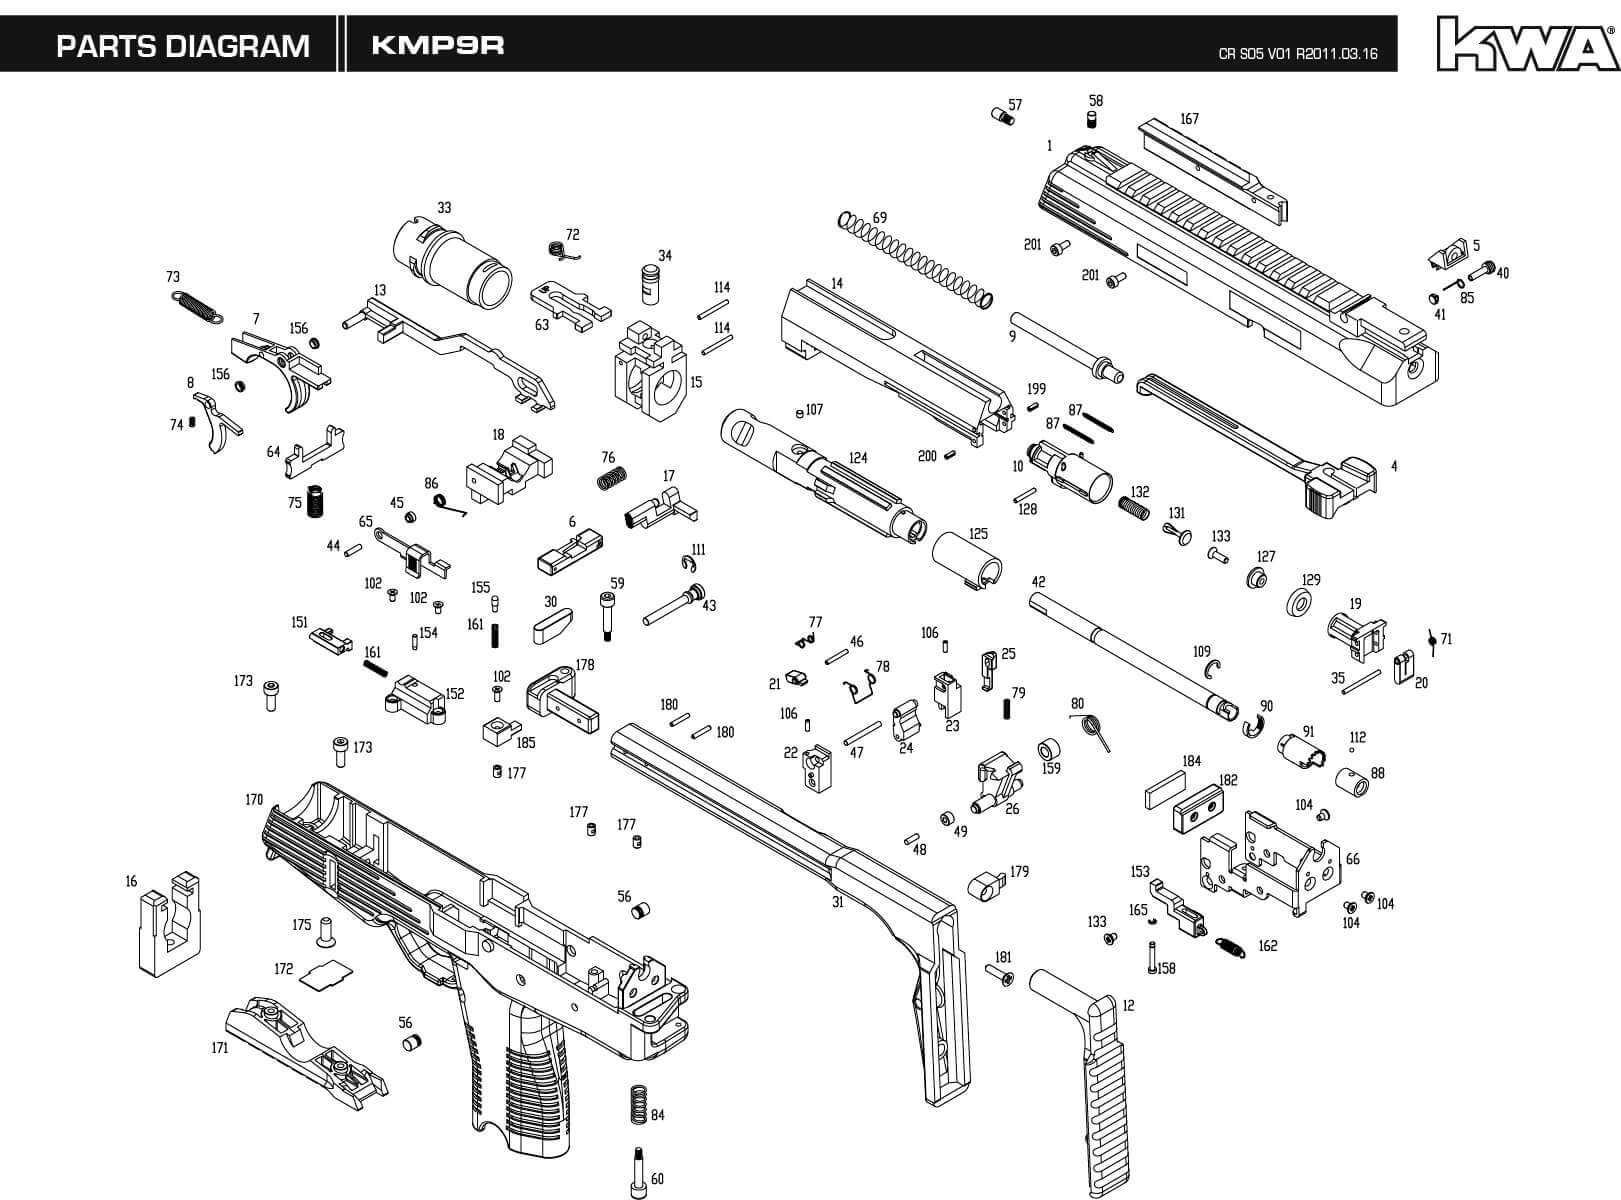 hight resolution of downloads kwa airsoft smith and wesson m p 9mm parts diagram m p 9 parts diagram